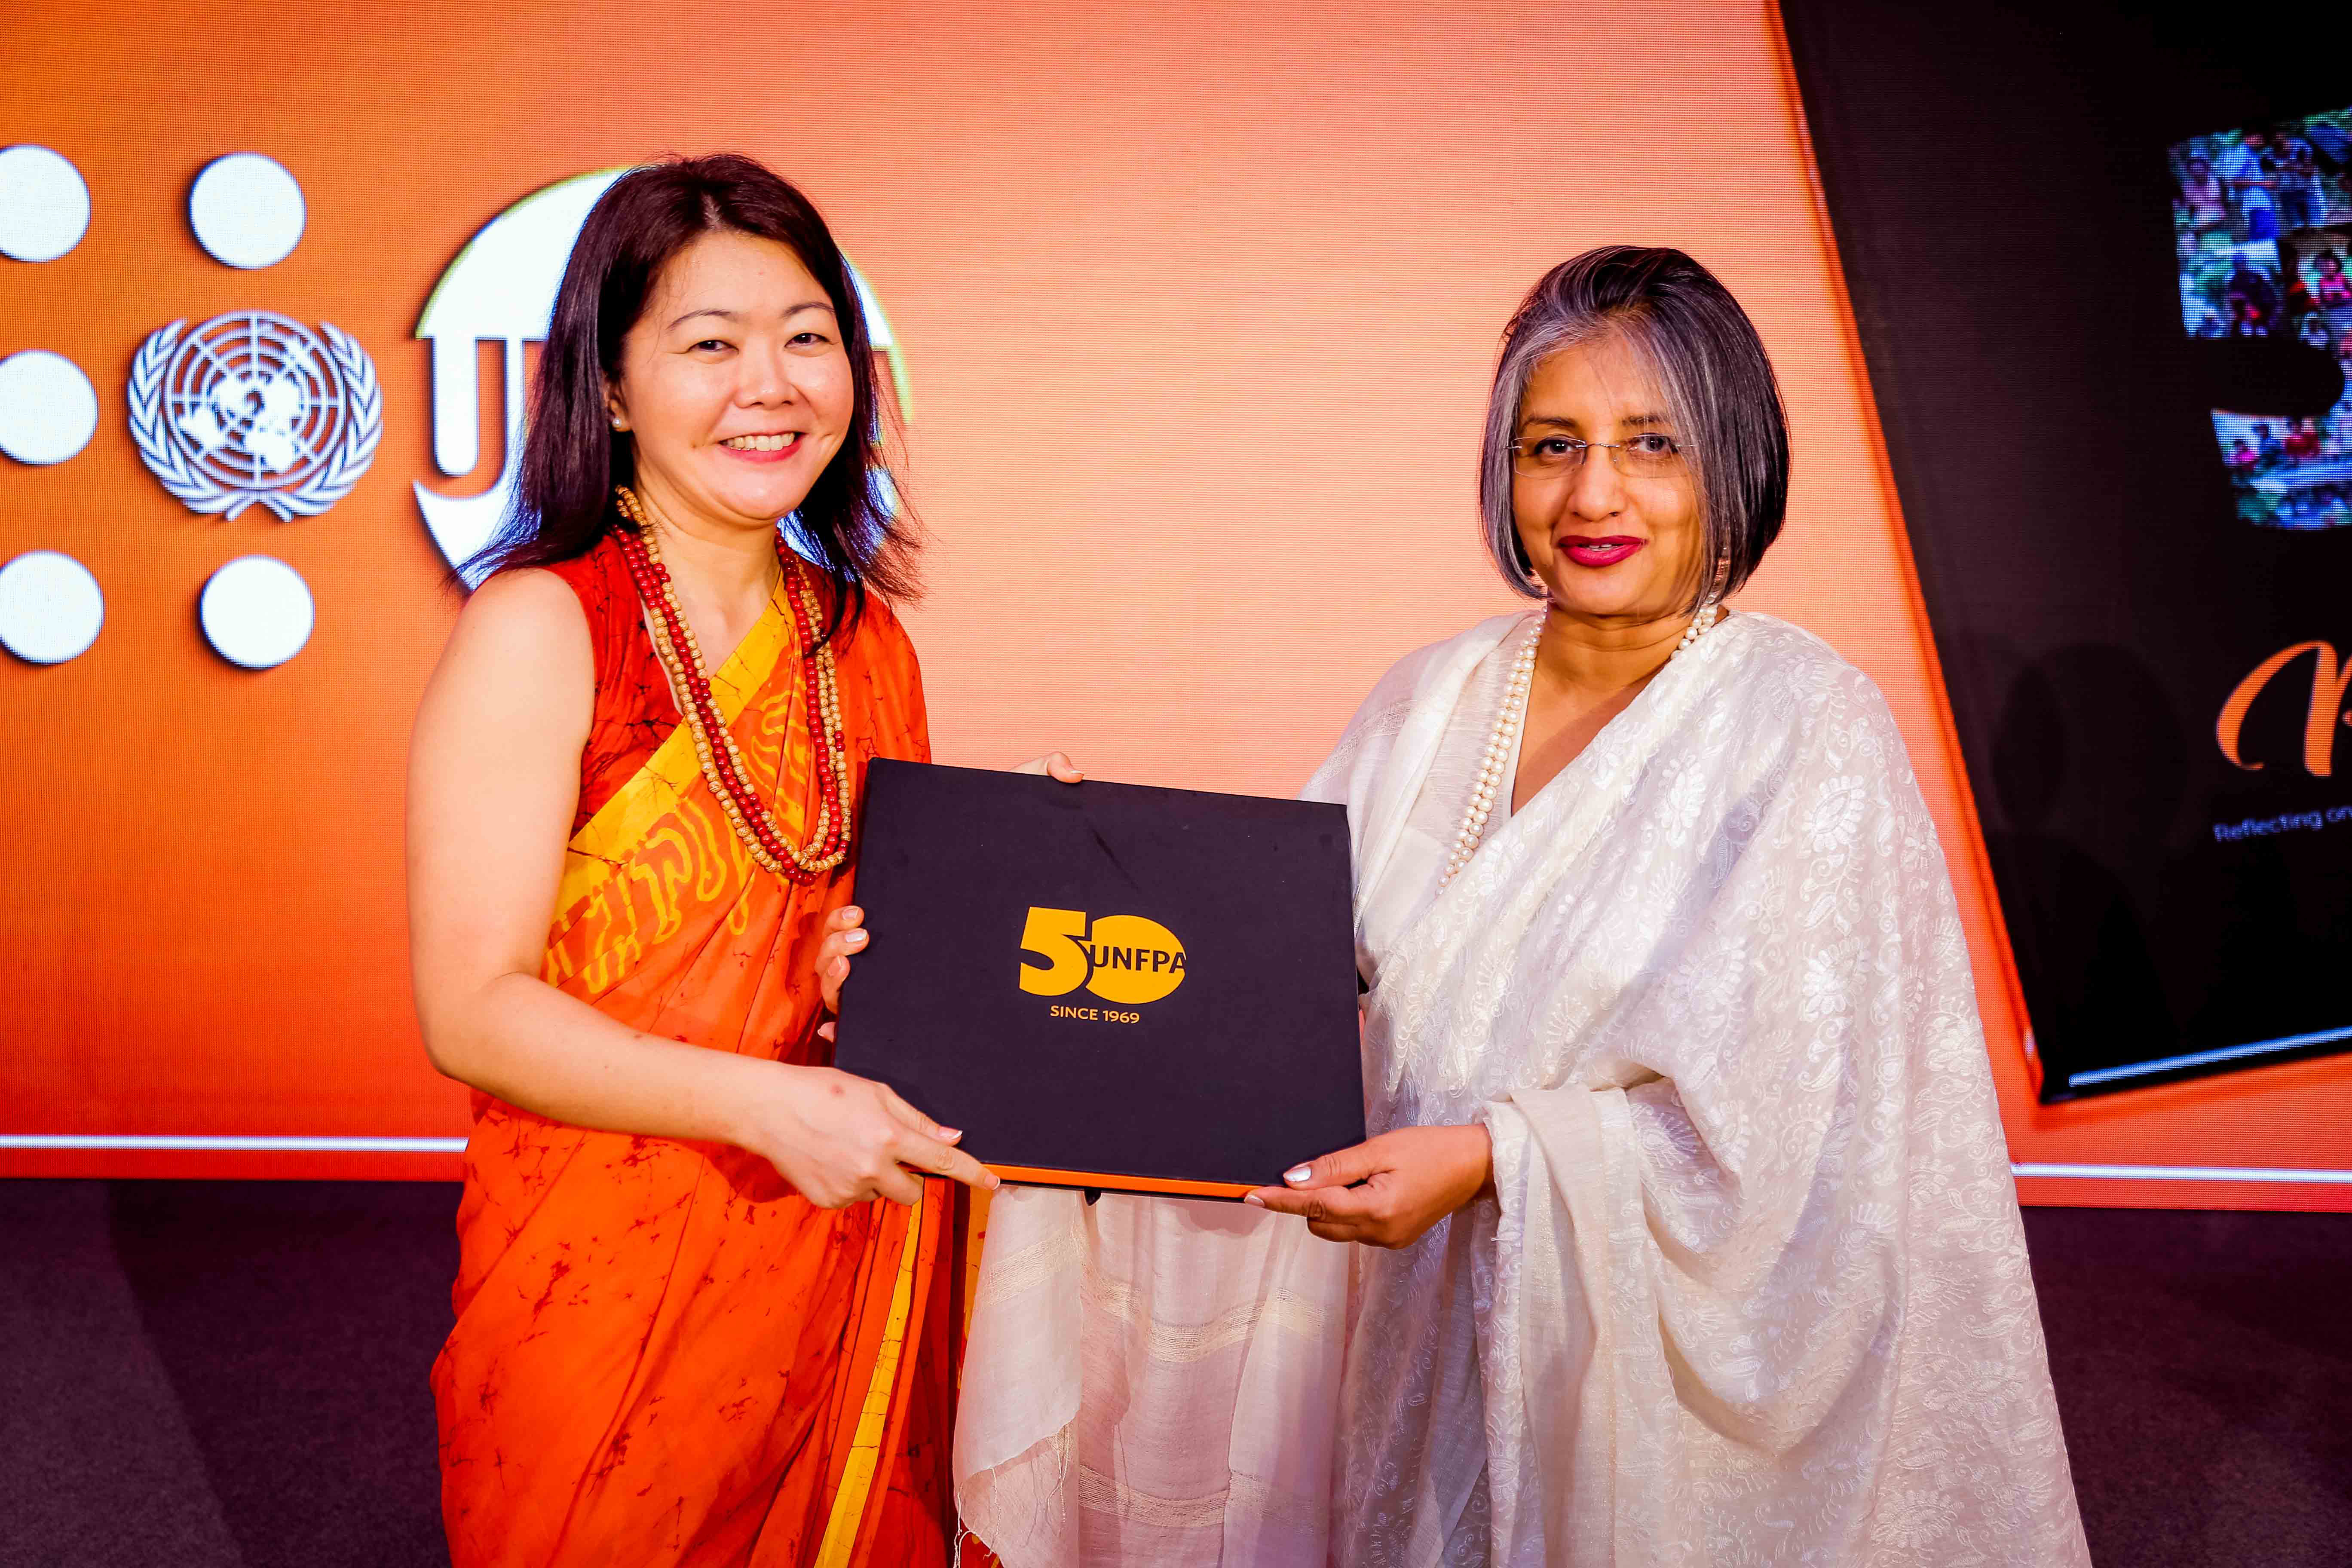 Ms. Ritsu Nacken handing over the first copy of 'Perspectives' to Prof. Maithree Wickramasinghe